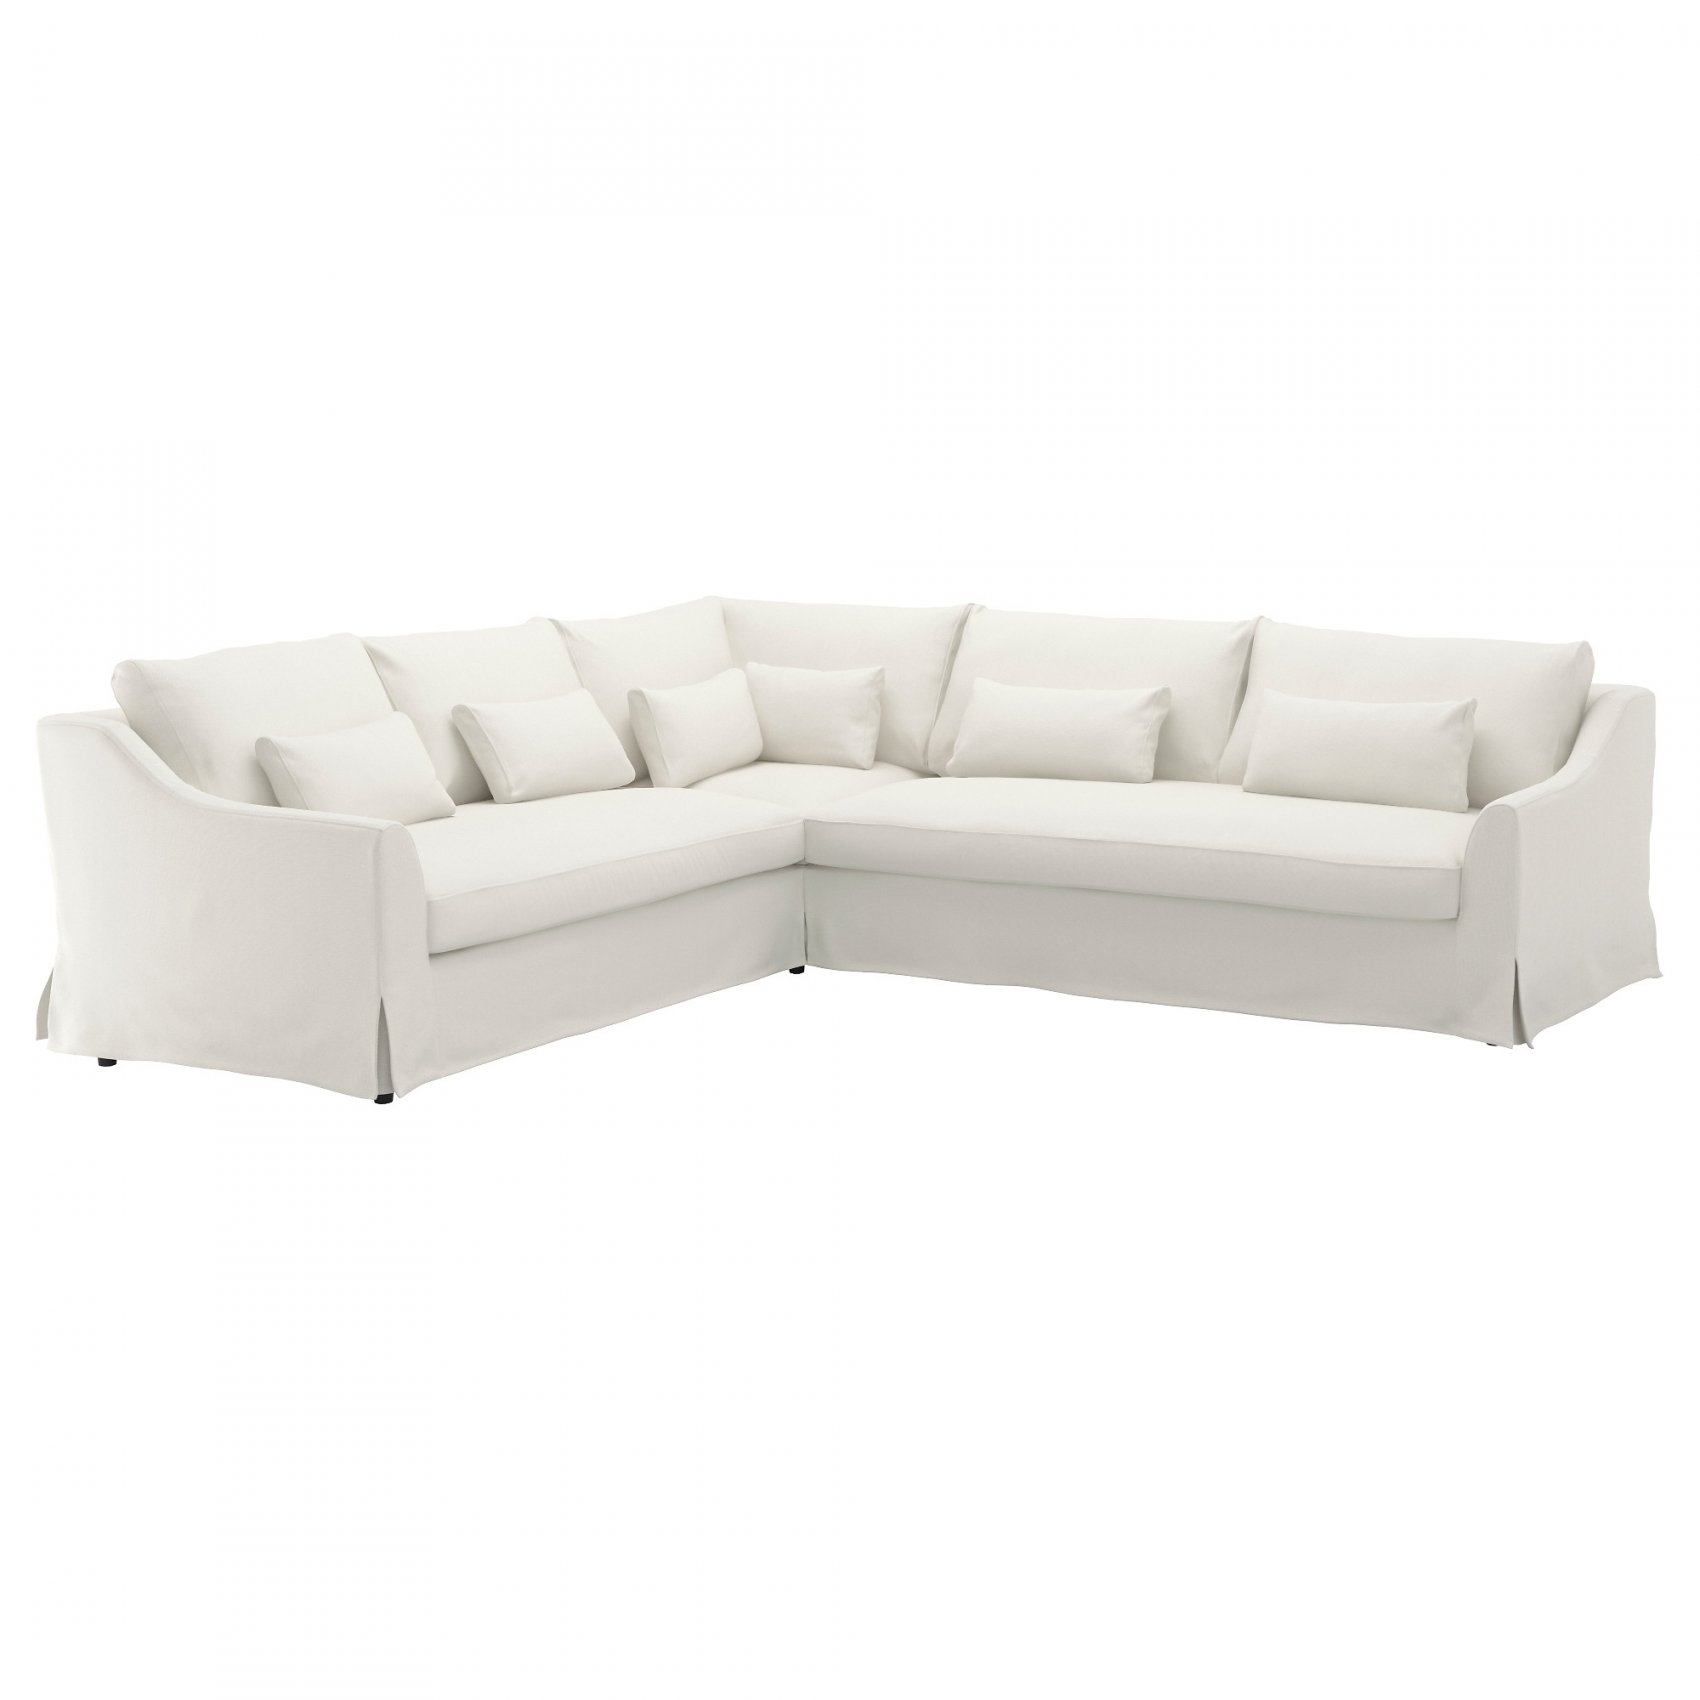 Sectional Sofas - Ikea With Regard To White Sectional Sofa Fabric intended for Sectional Sofas at Ikea (Image 12 of 15)